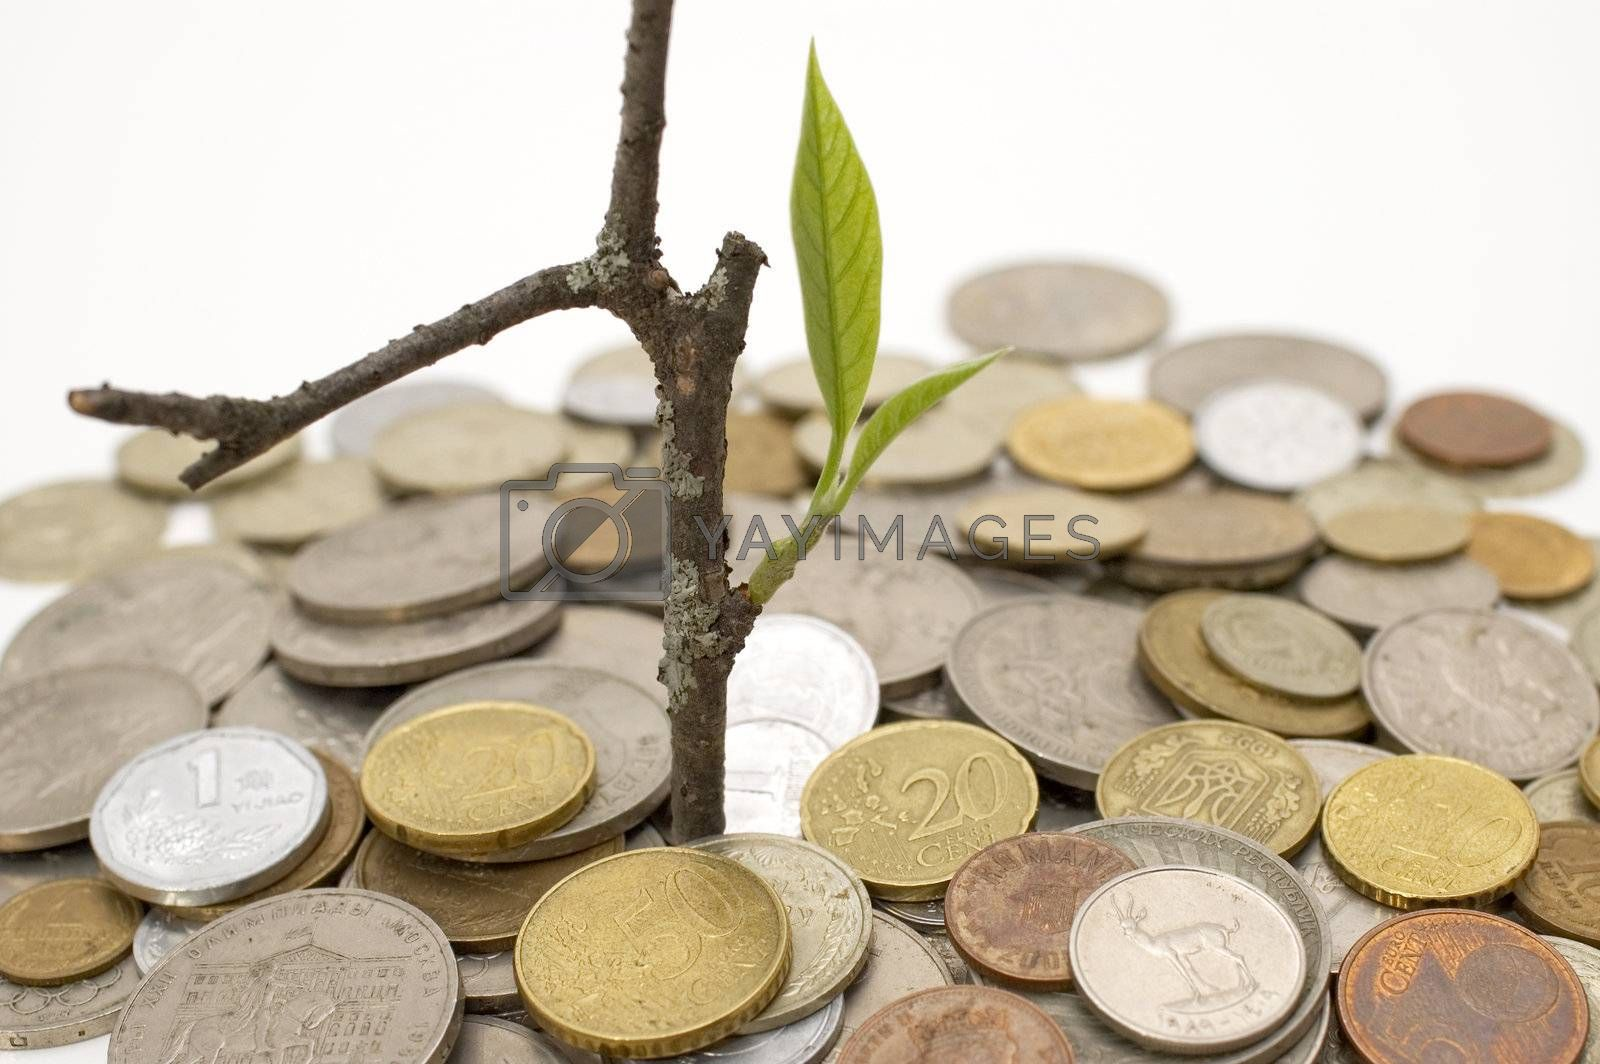 Coins and plant, isolated on white background.